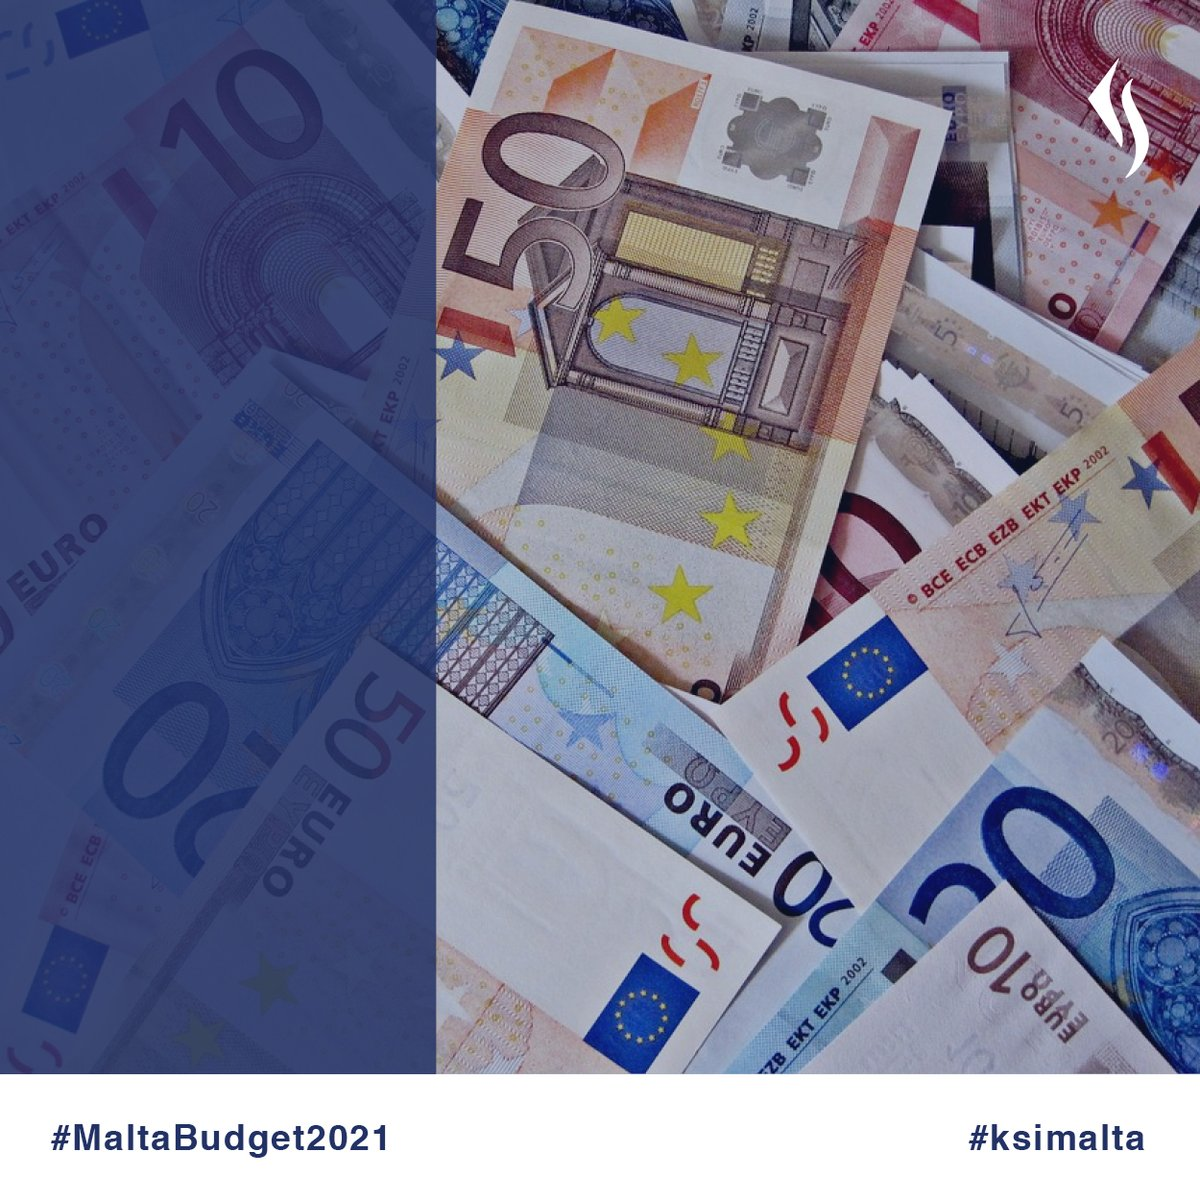 #MaltaBudget21 Update  The cost of living allowance will be €1.75 euro per week. Follow our #livefeeds for more updates  #ksimalta #cola https://t.co/lwXPgyhkFM